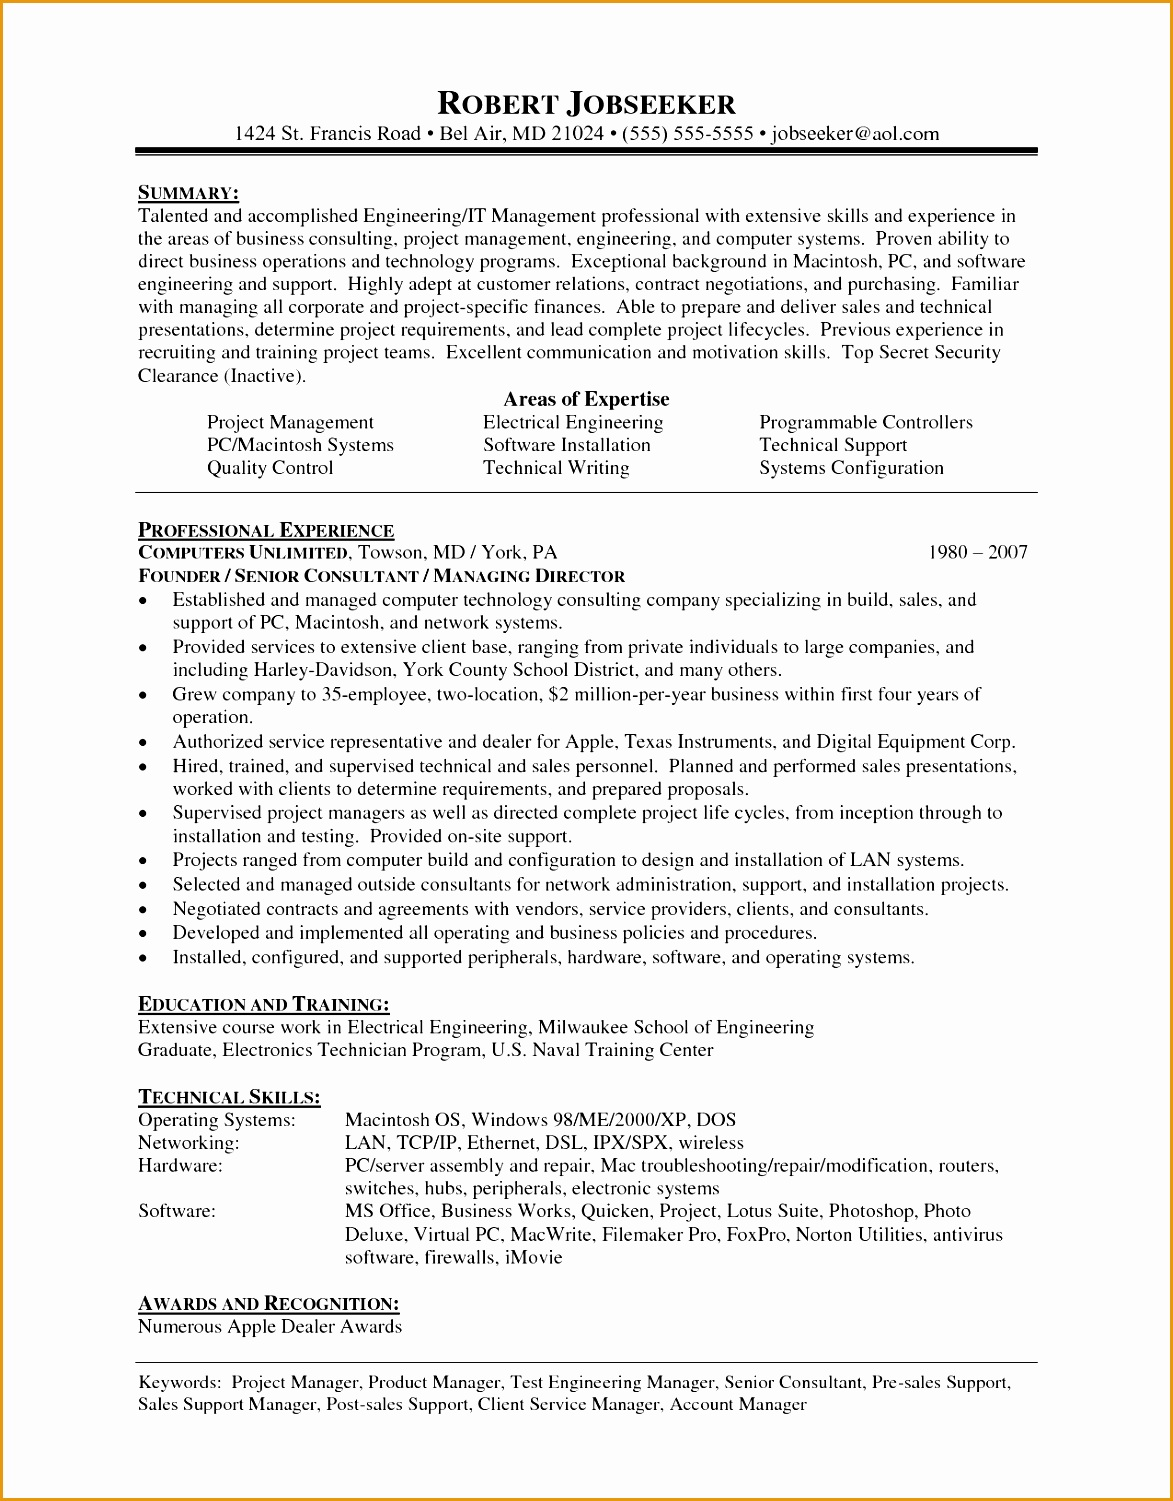 7 Recruitment Consultant Resume